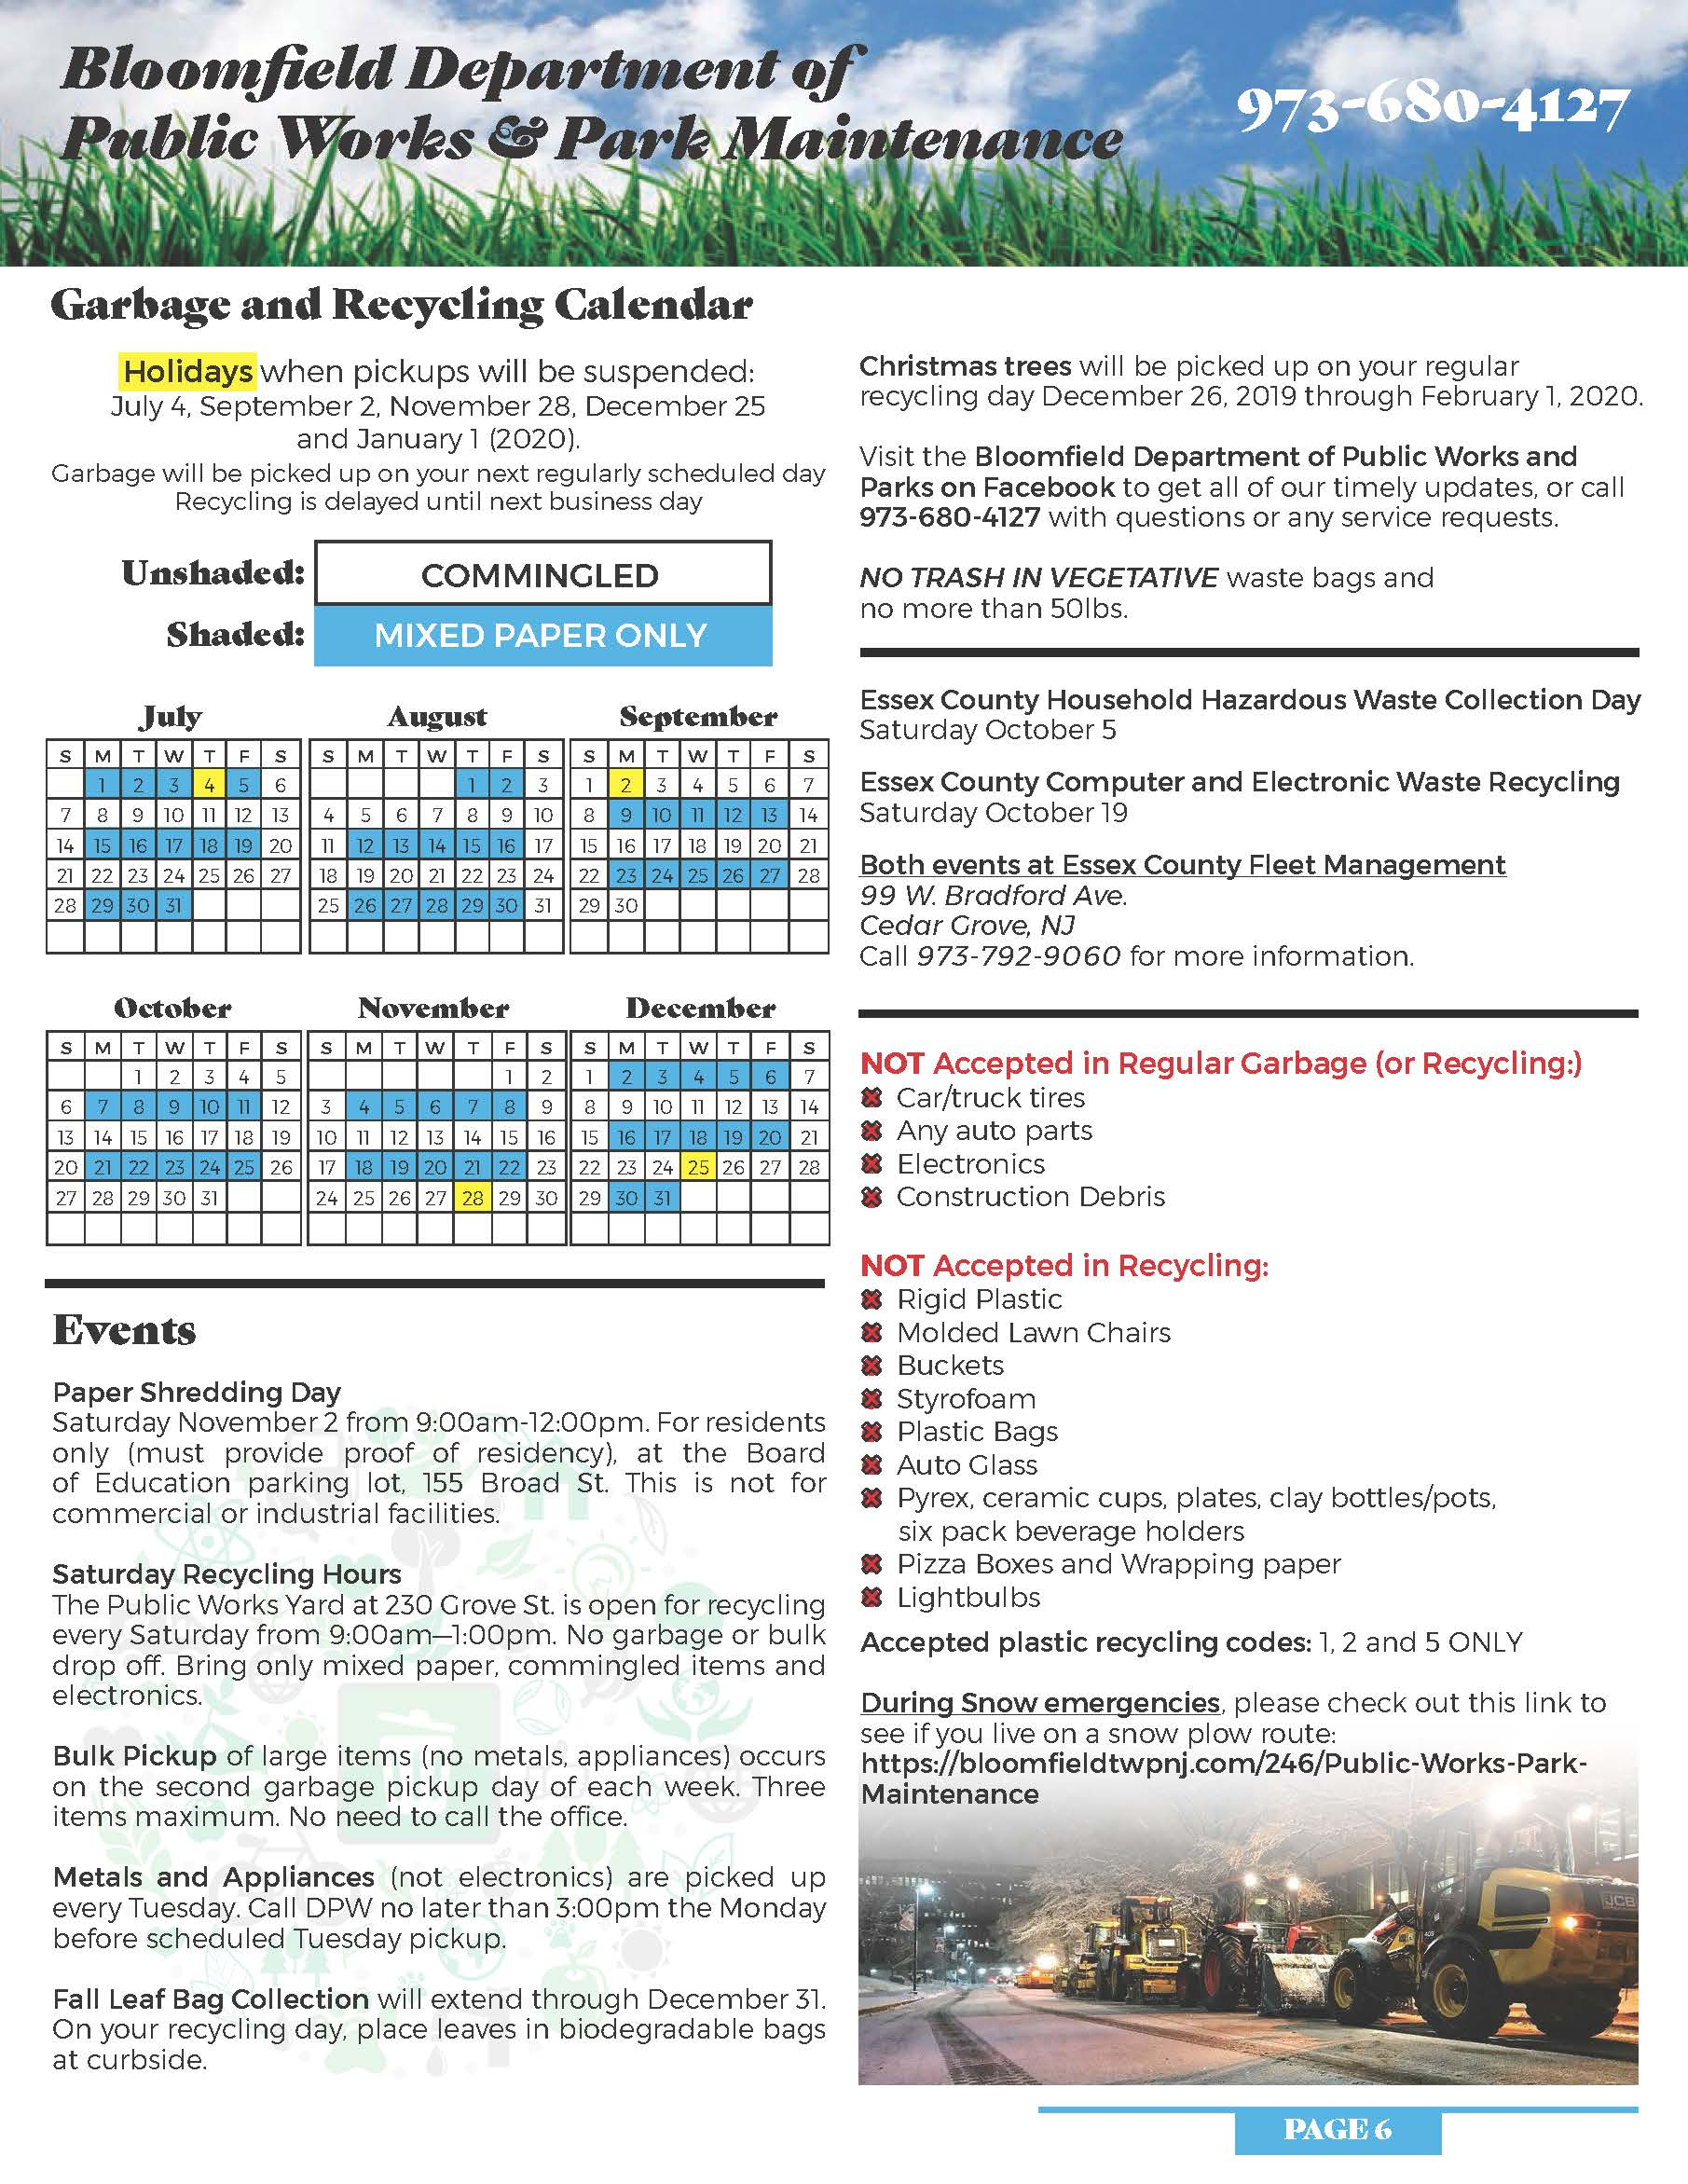 Garbage & Recycling street Schedule | Bloomfield Township, NJ